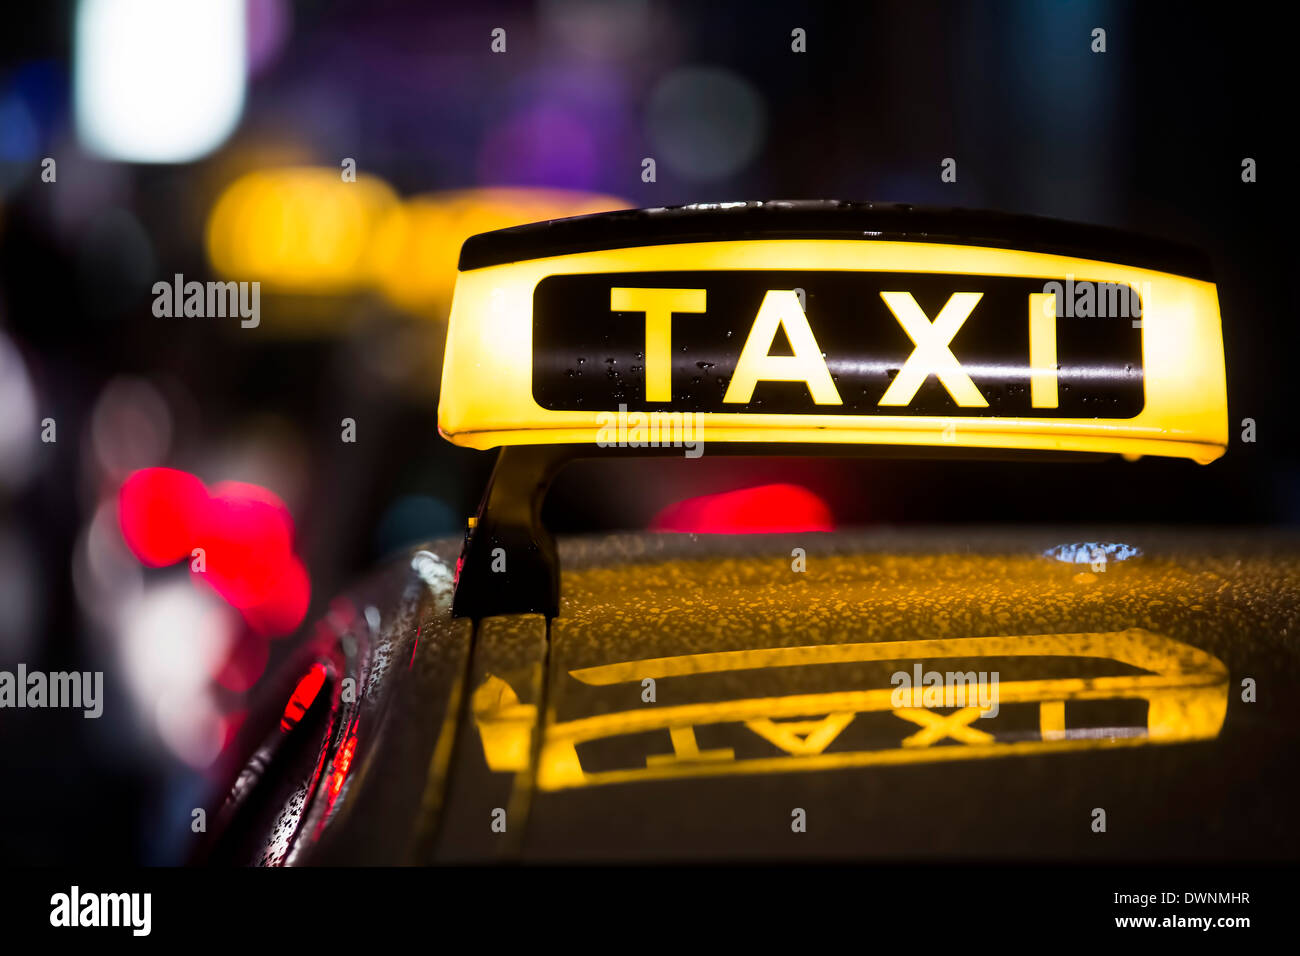 Taxi in the rain at night, Cologne, North Rhine-Westphalia, Germany - Stock Image